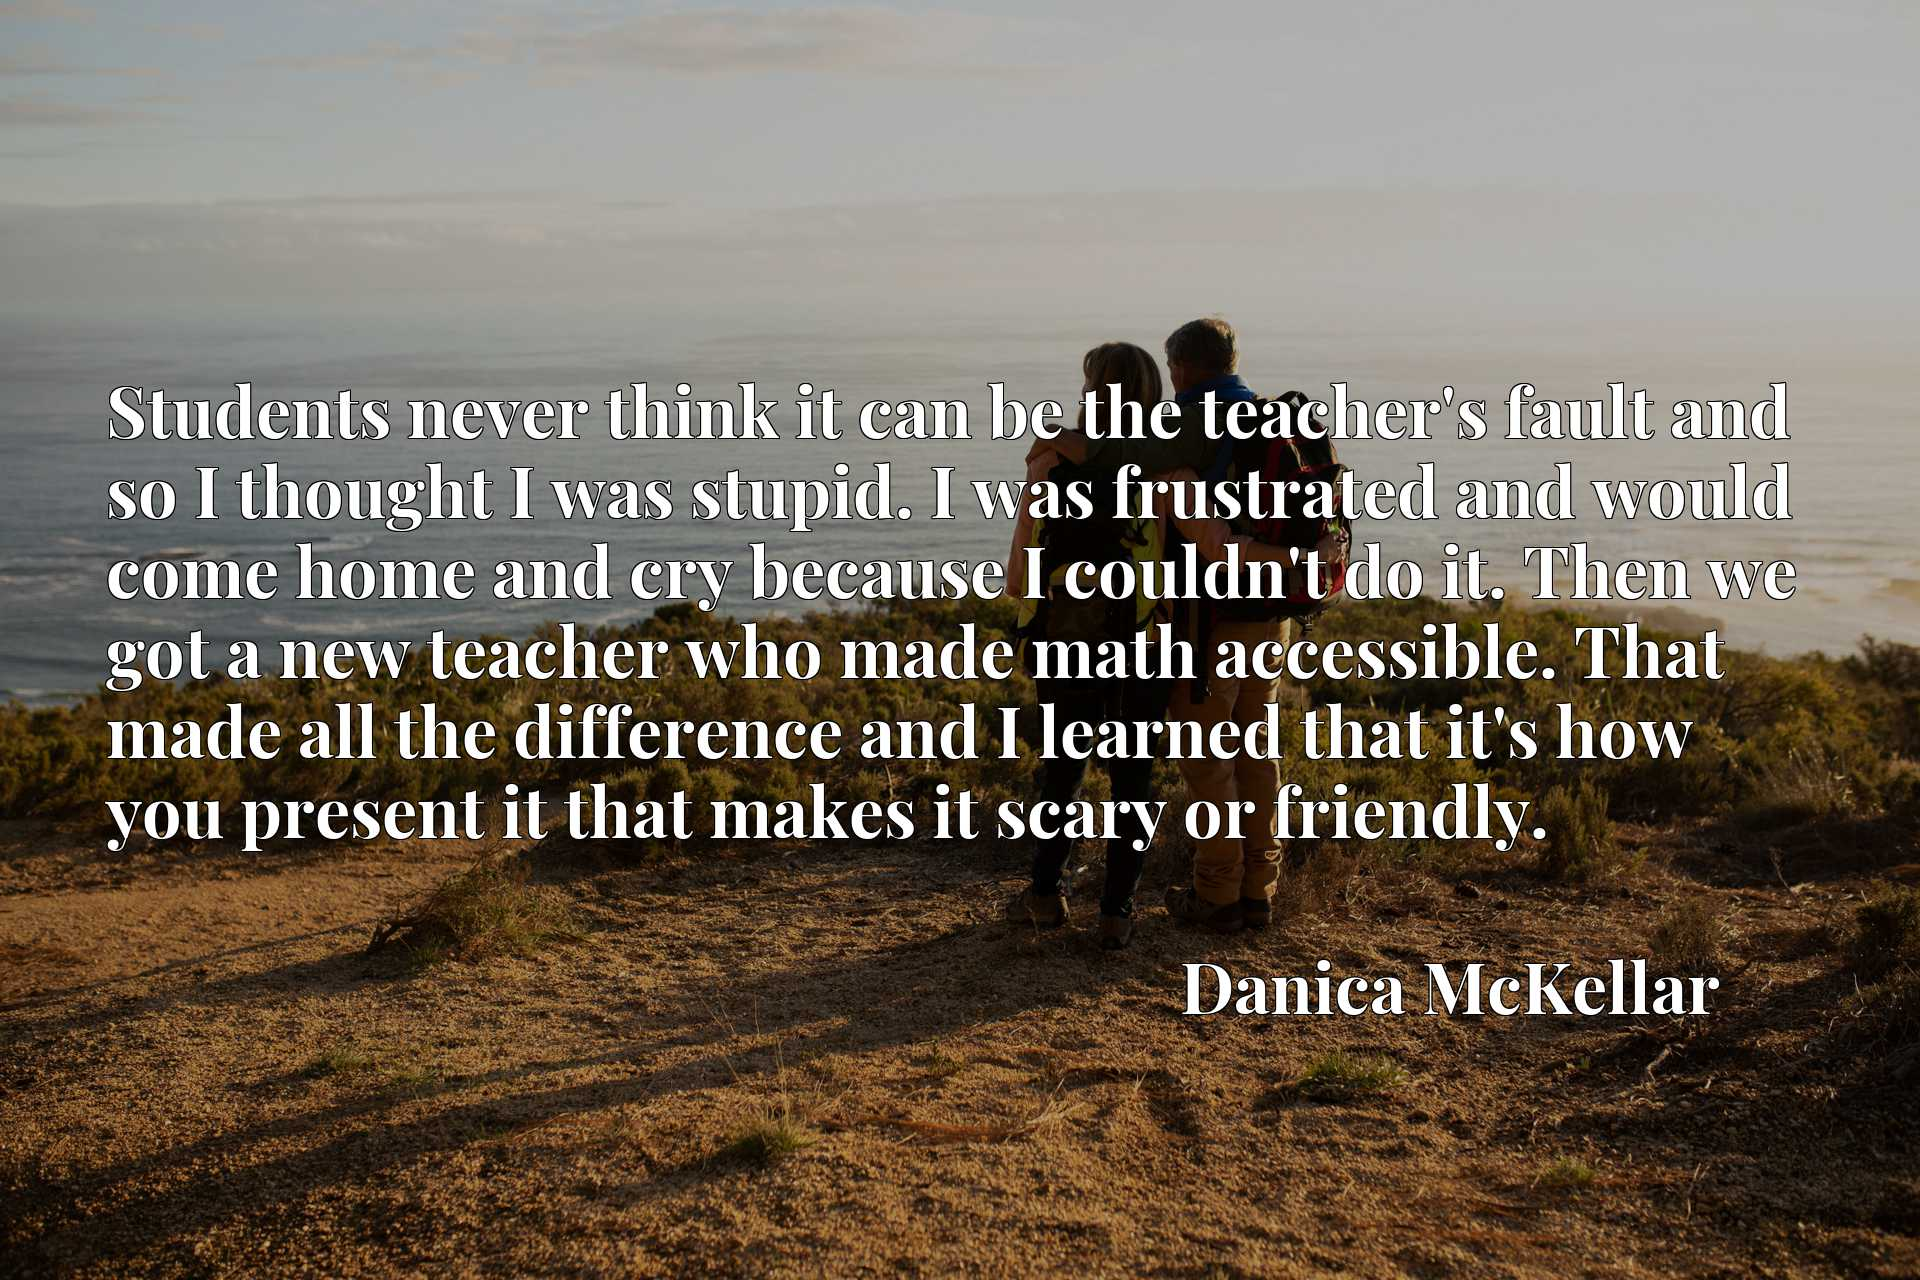 Students never think it can be the teacher's fault and so I thought I was stupid. I was frustrated and would come home and cry because I couldn't do it. Then we got a new teacher who made math accessible. That made all the difference and I learned that it's how you present it that makes it scary or friendly.